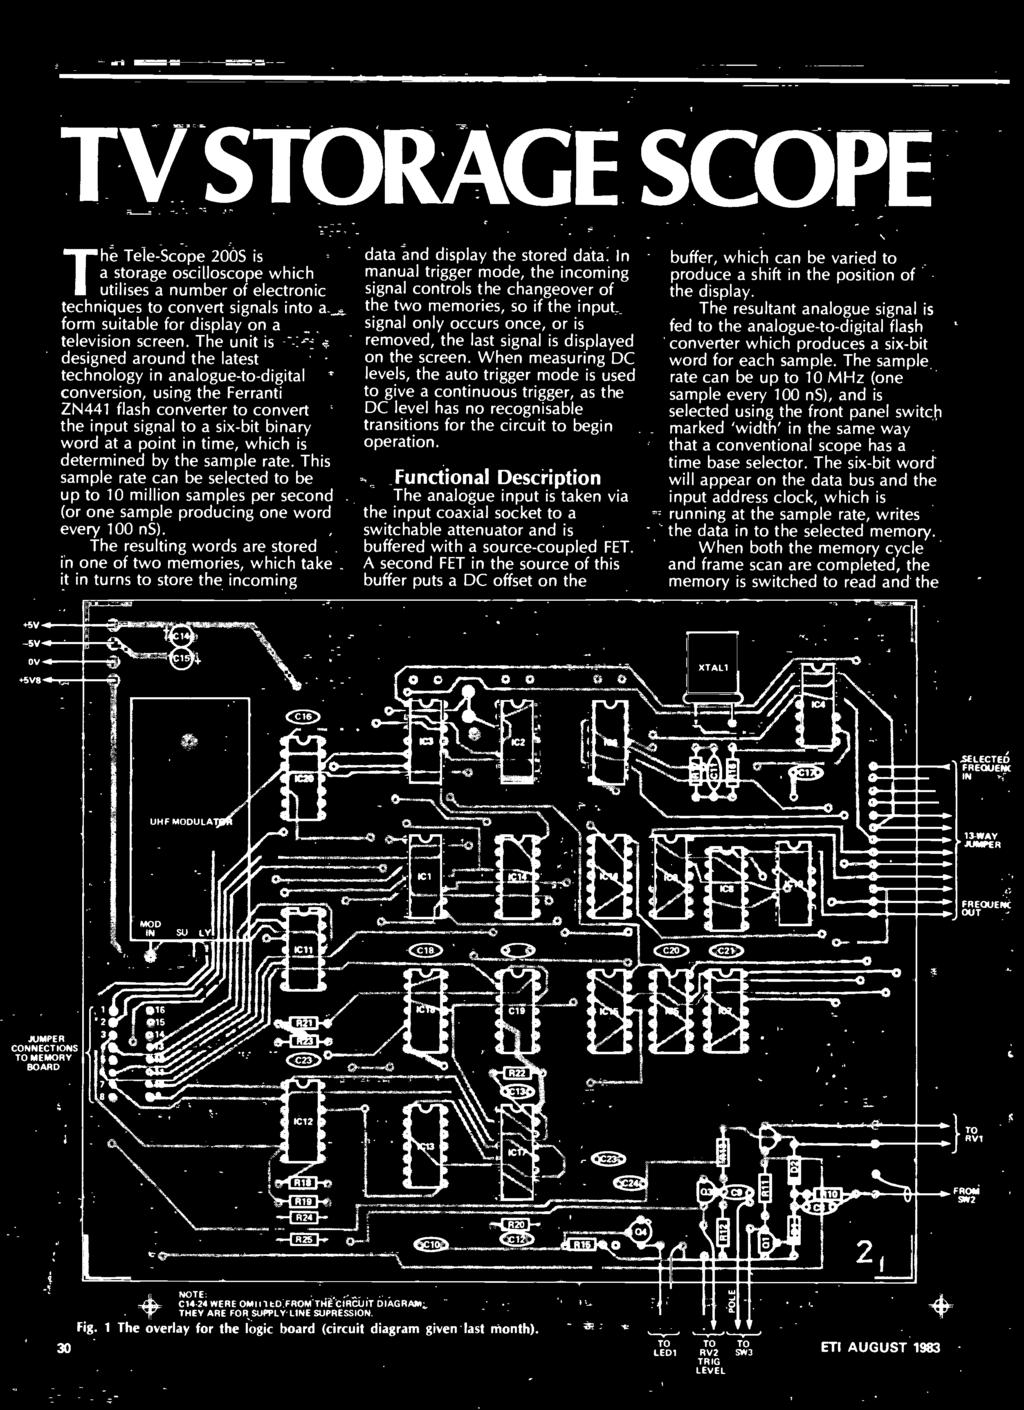 Flexibility Audio00 Puting Construction Ontrol Modular This Is The Circuitdiagram Of Keyboard Support System For Zx81 N Manual Trigger Mode Incoming Signal Controls Changeover Two Memories